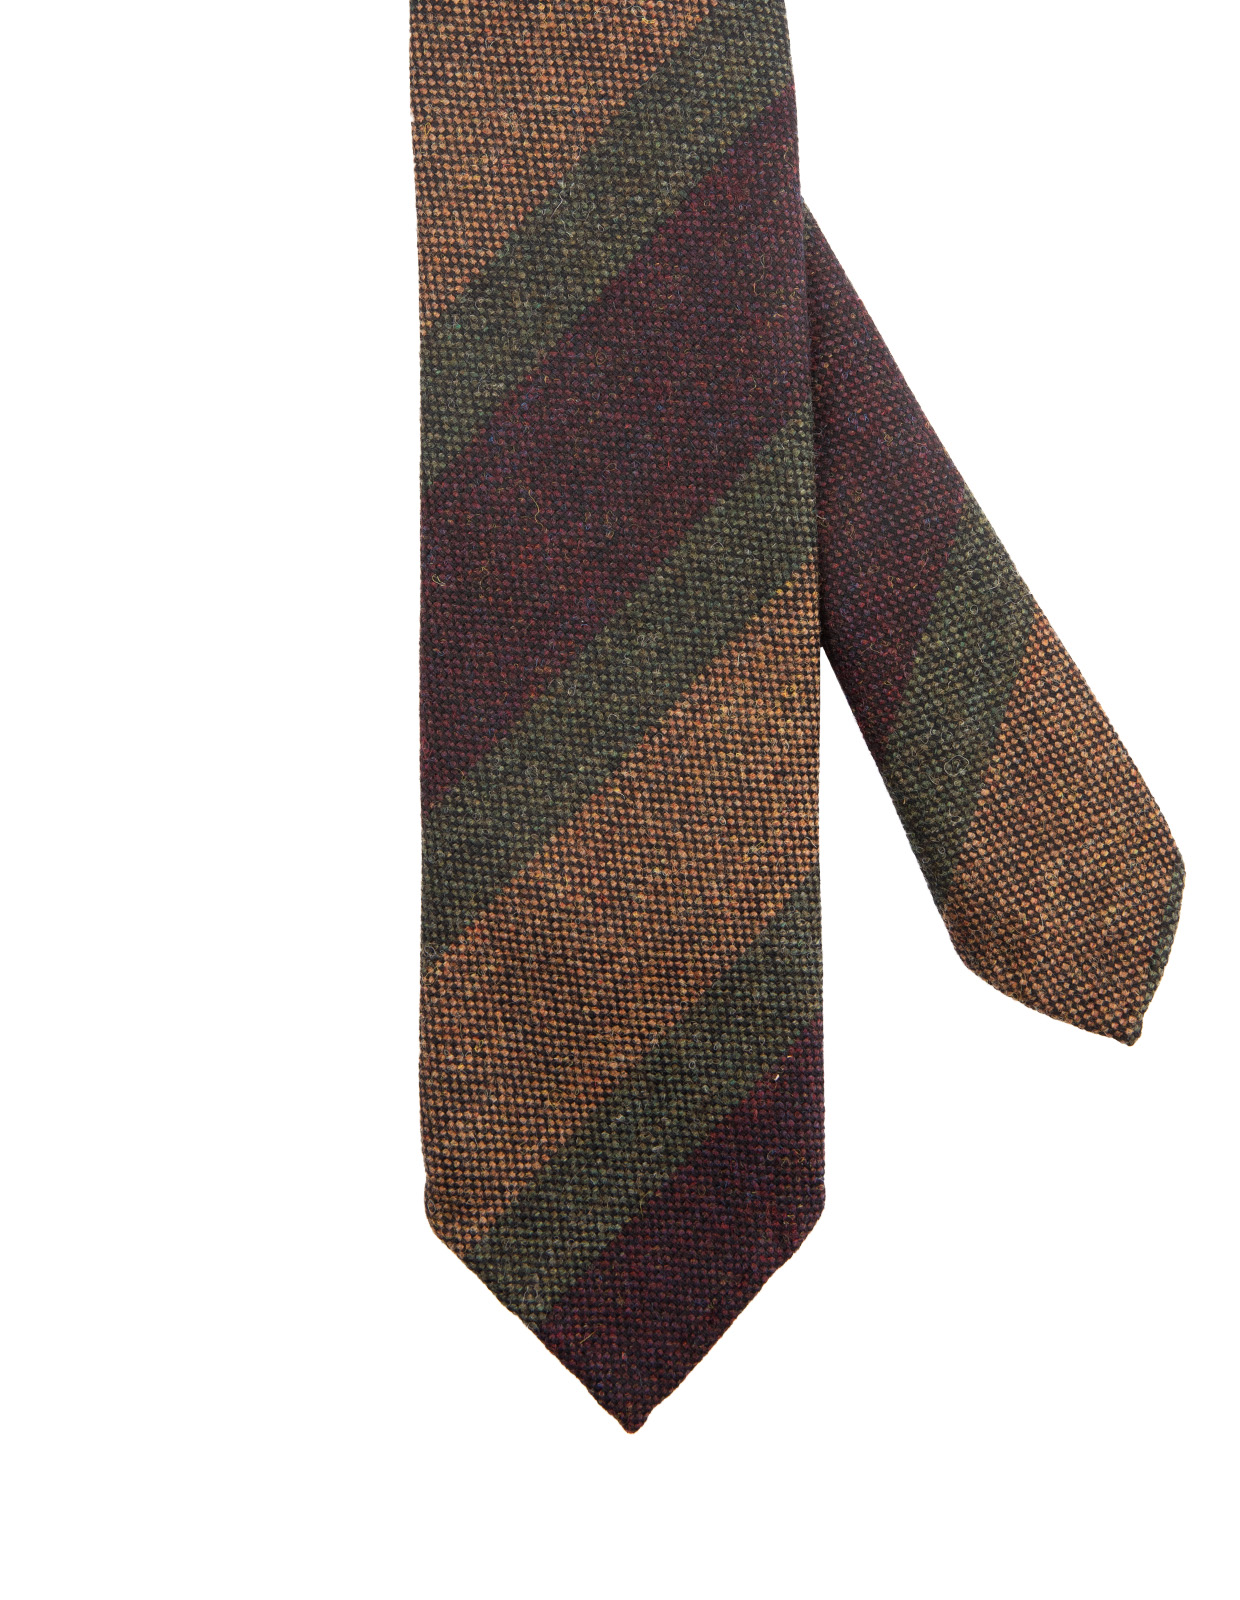 Striped Handmade Untipped Wool Tie BrownGreenWine